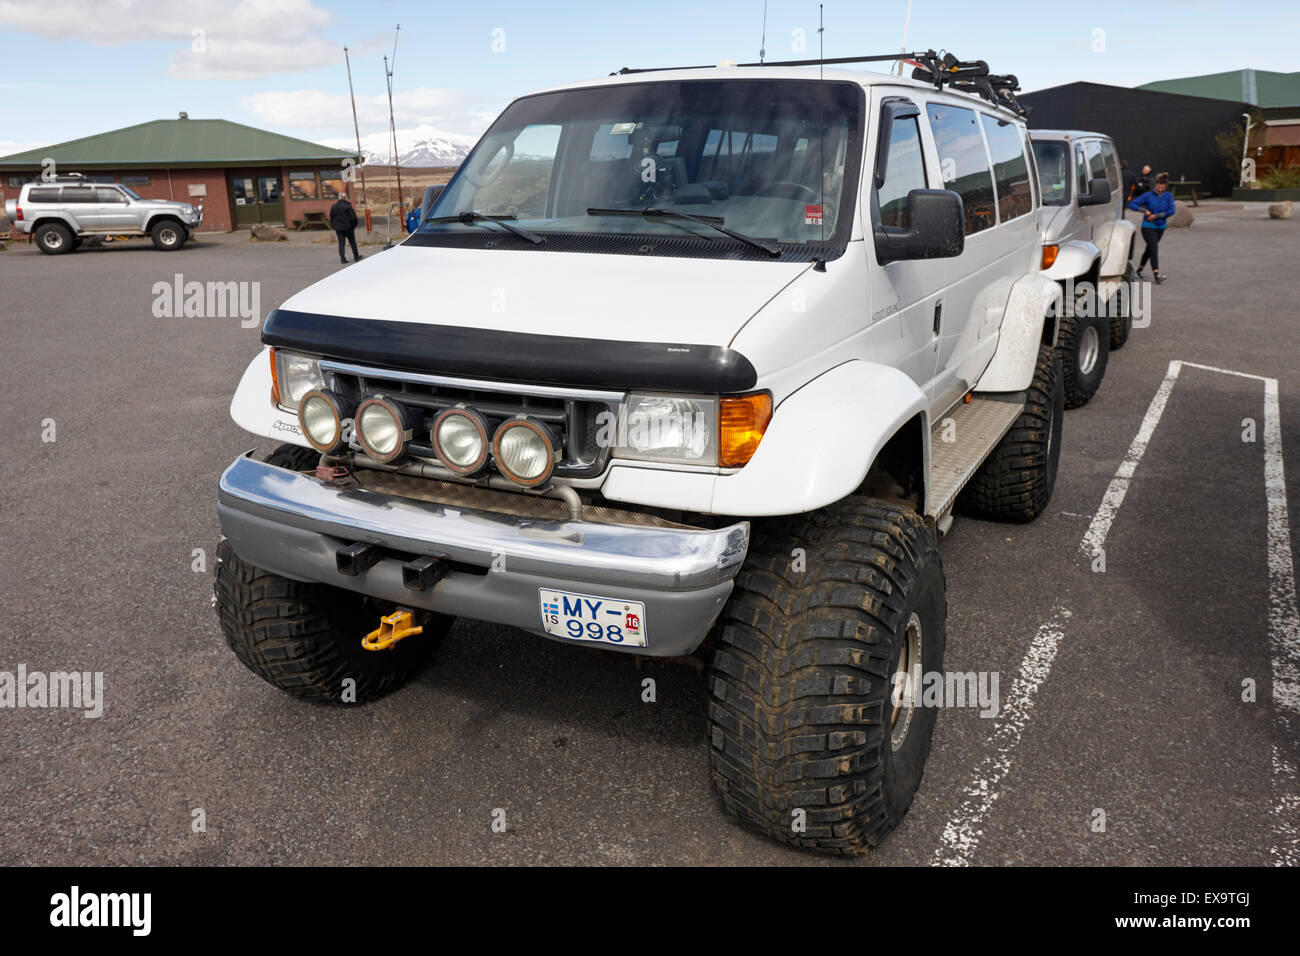 heavily modified 4x4 for off road driving and tours iceland - Stock Image